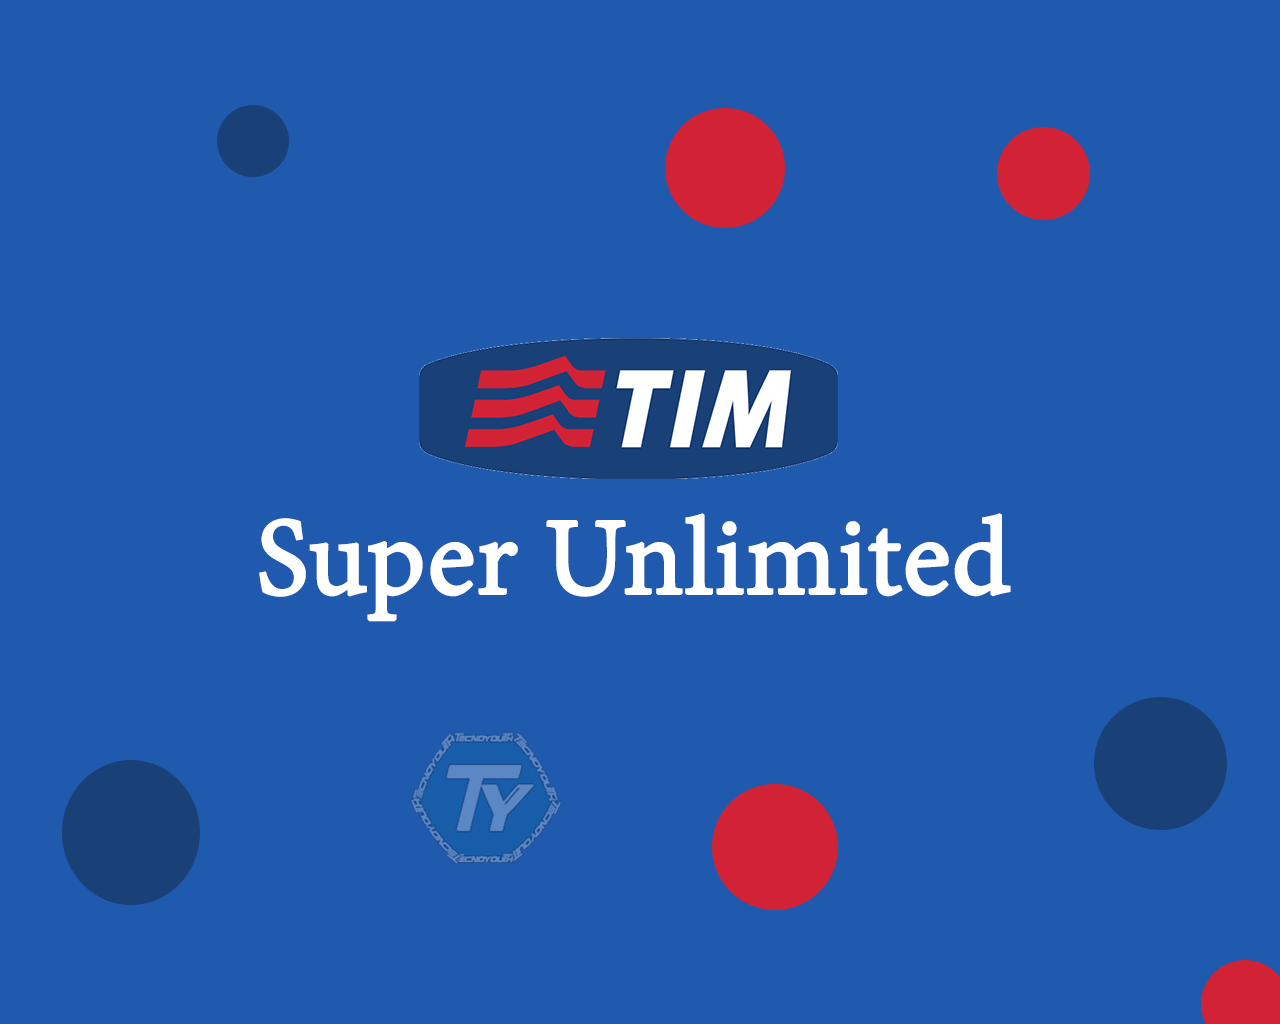 Tim-Super-Unlimited